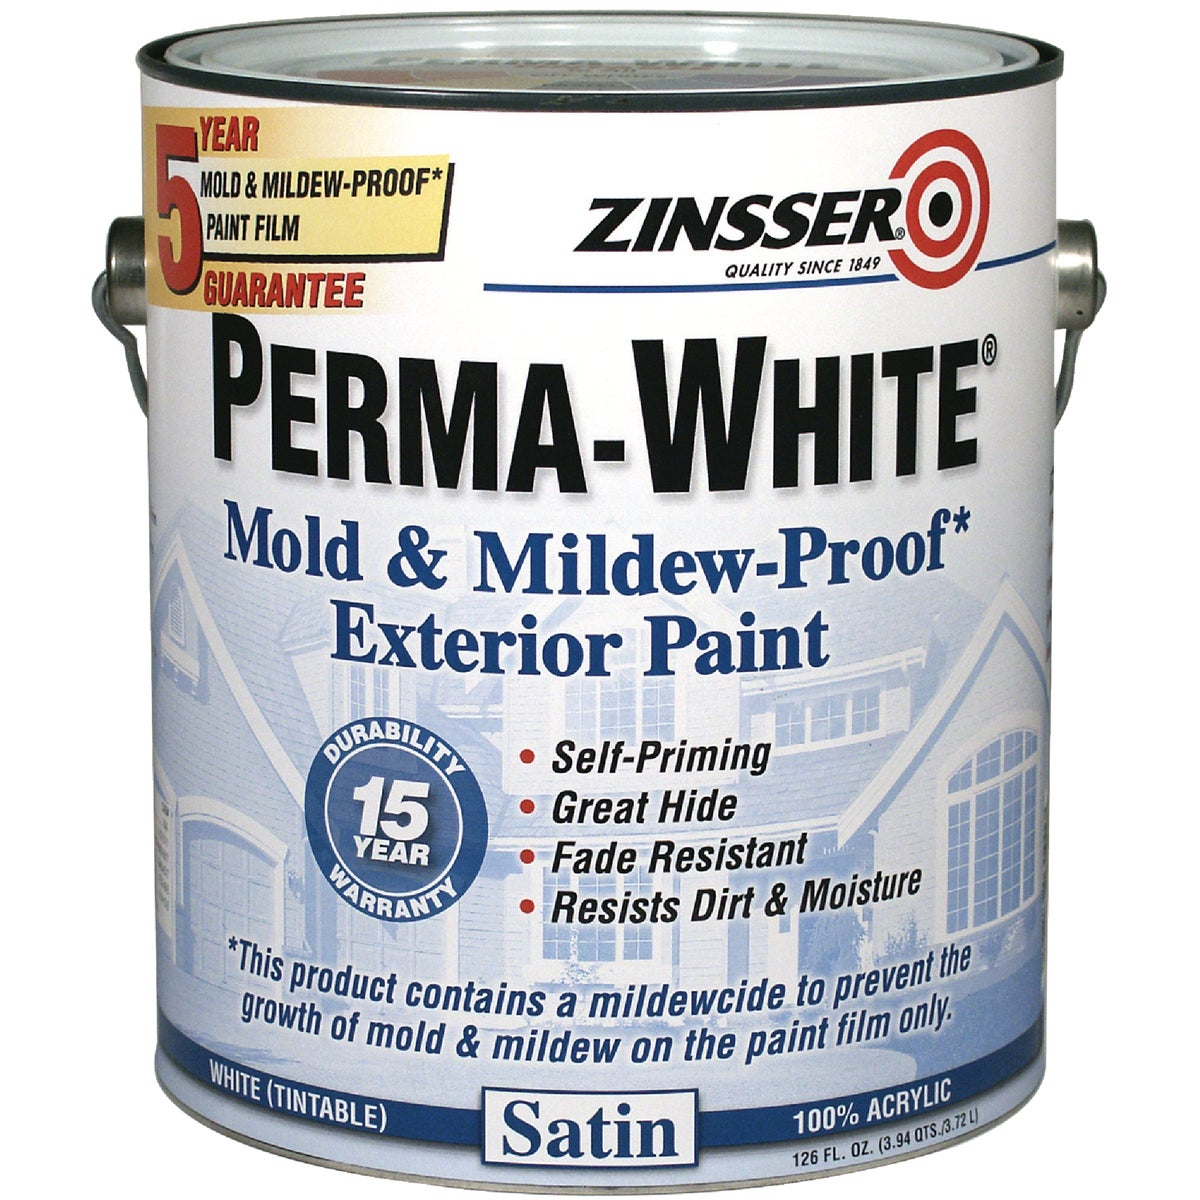 EXT SAT WHT MILDEW PAINT - 3101 by Rustoleum